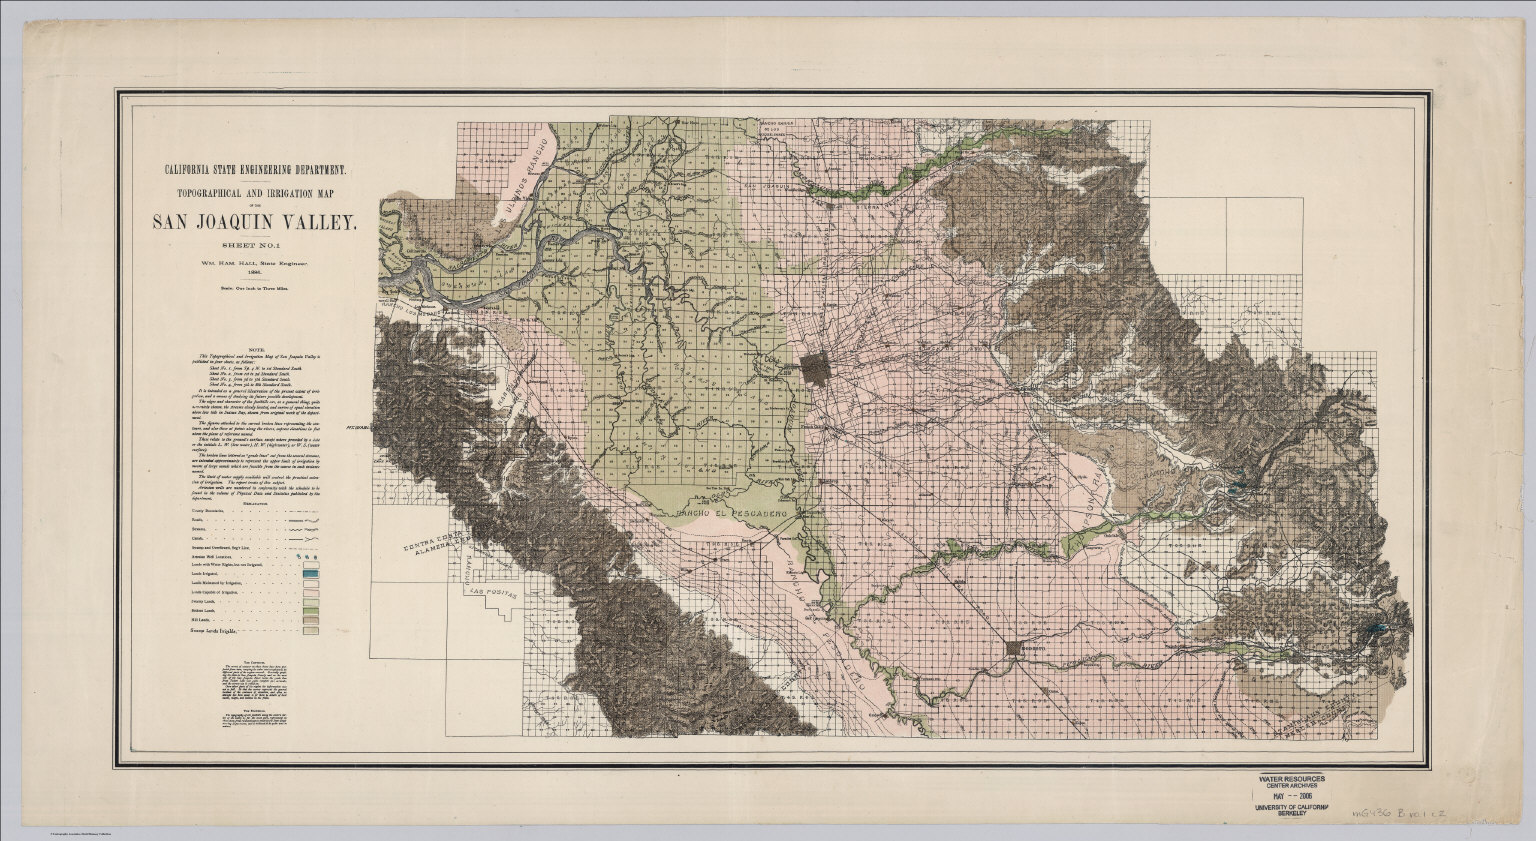 Sheet No 1 Northern Portion Irrigation Map Of The San Joaquin